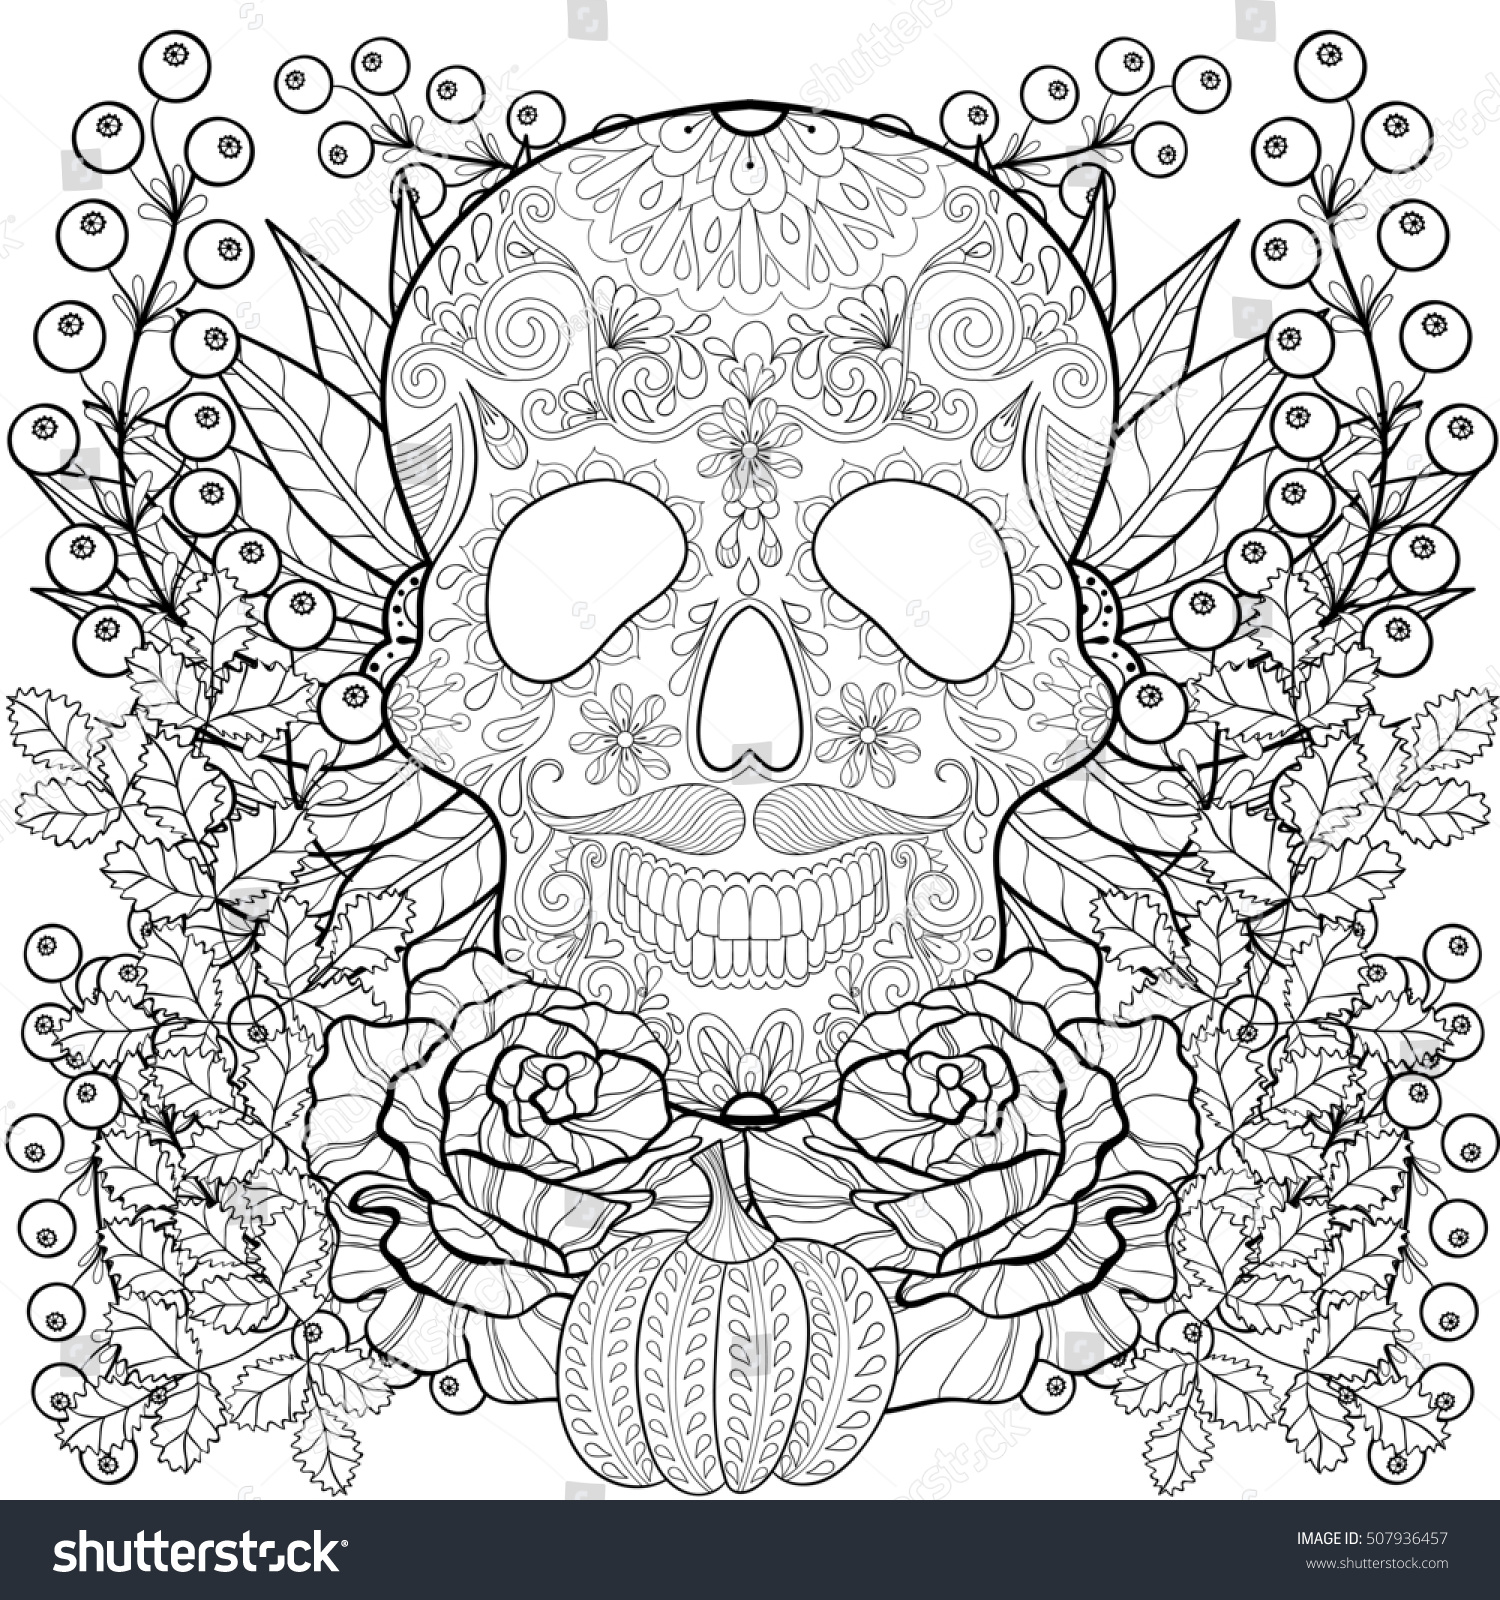 zentangle stylized skull pumpkin rose sunflower stock illustration